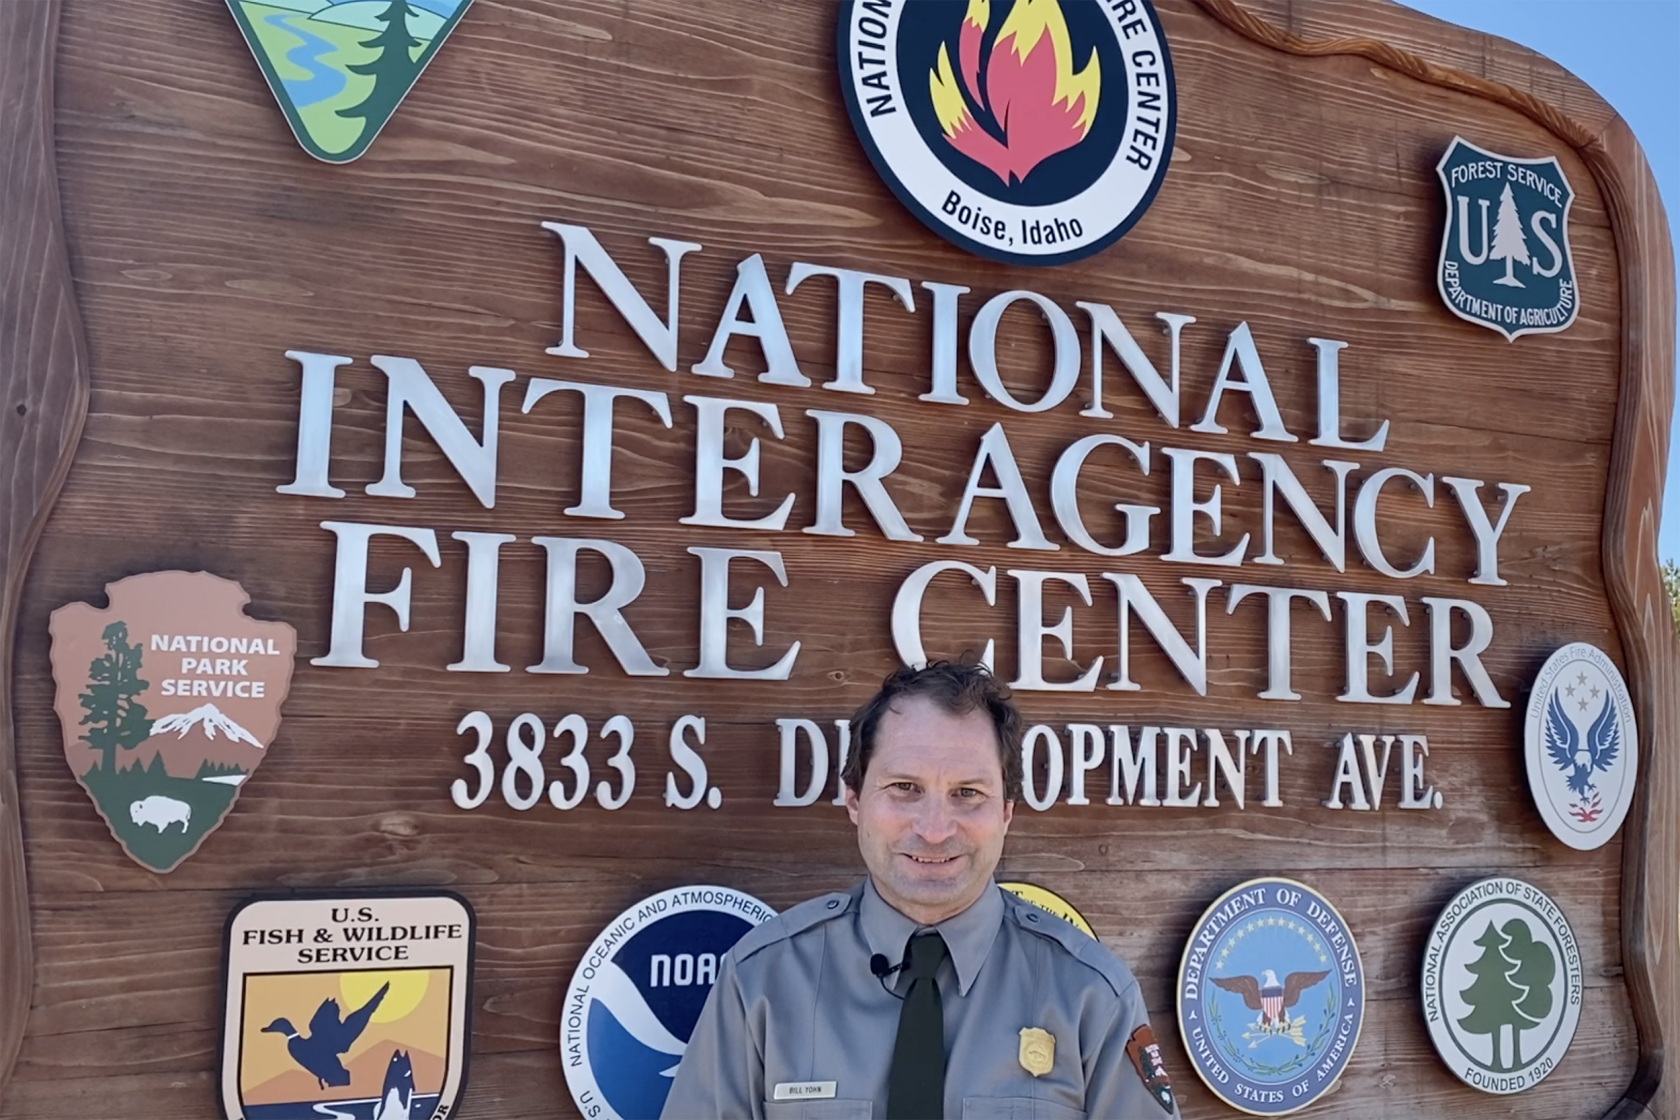 Bill Yohn poses in front of the sign at the National Interagency Fire Center